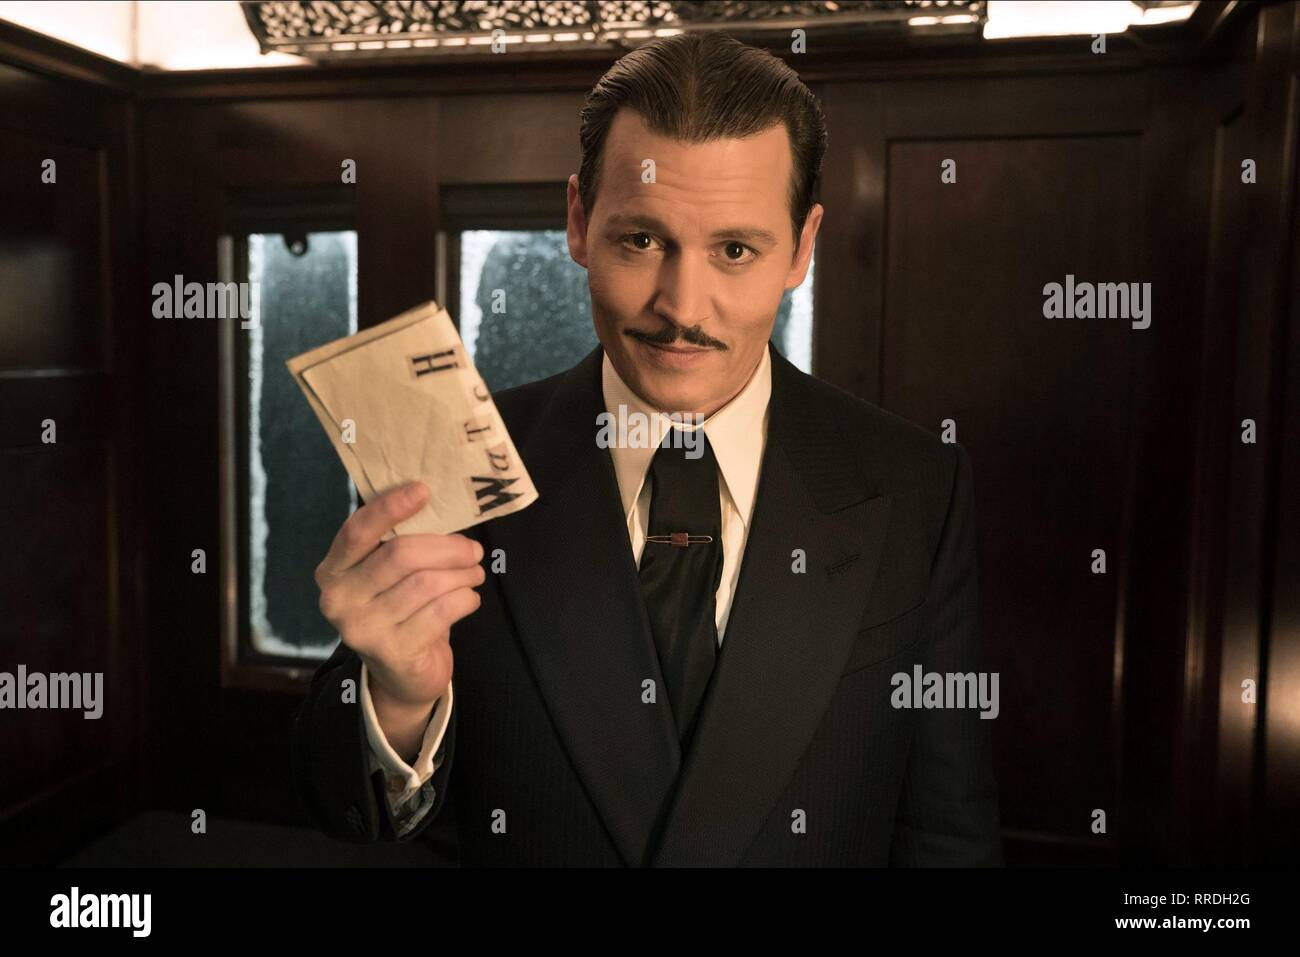 MURDER ON THE ORIENT EXPRESS, JOHNNY DEPP, 2017 - Stock Image